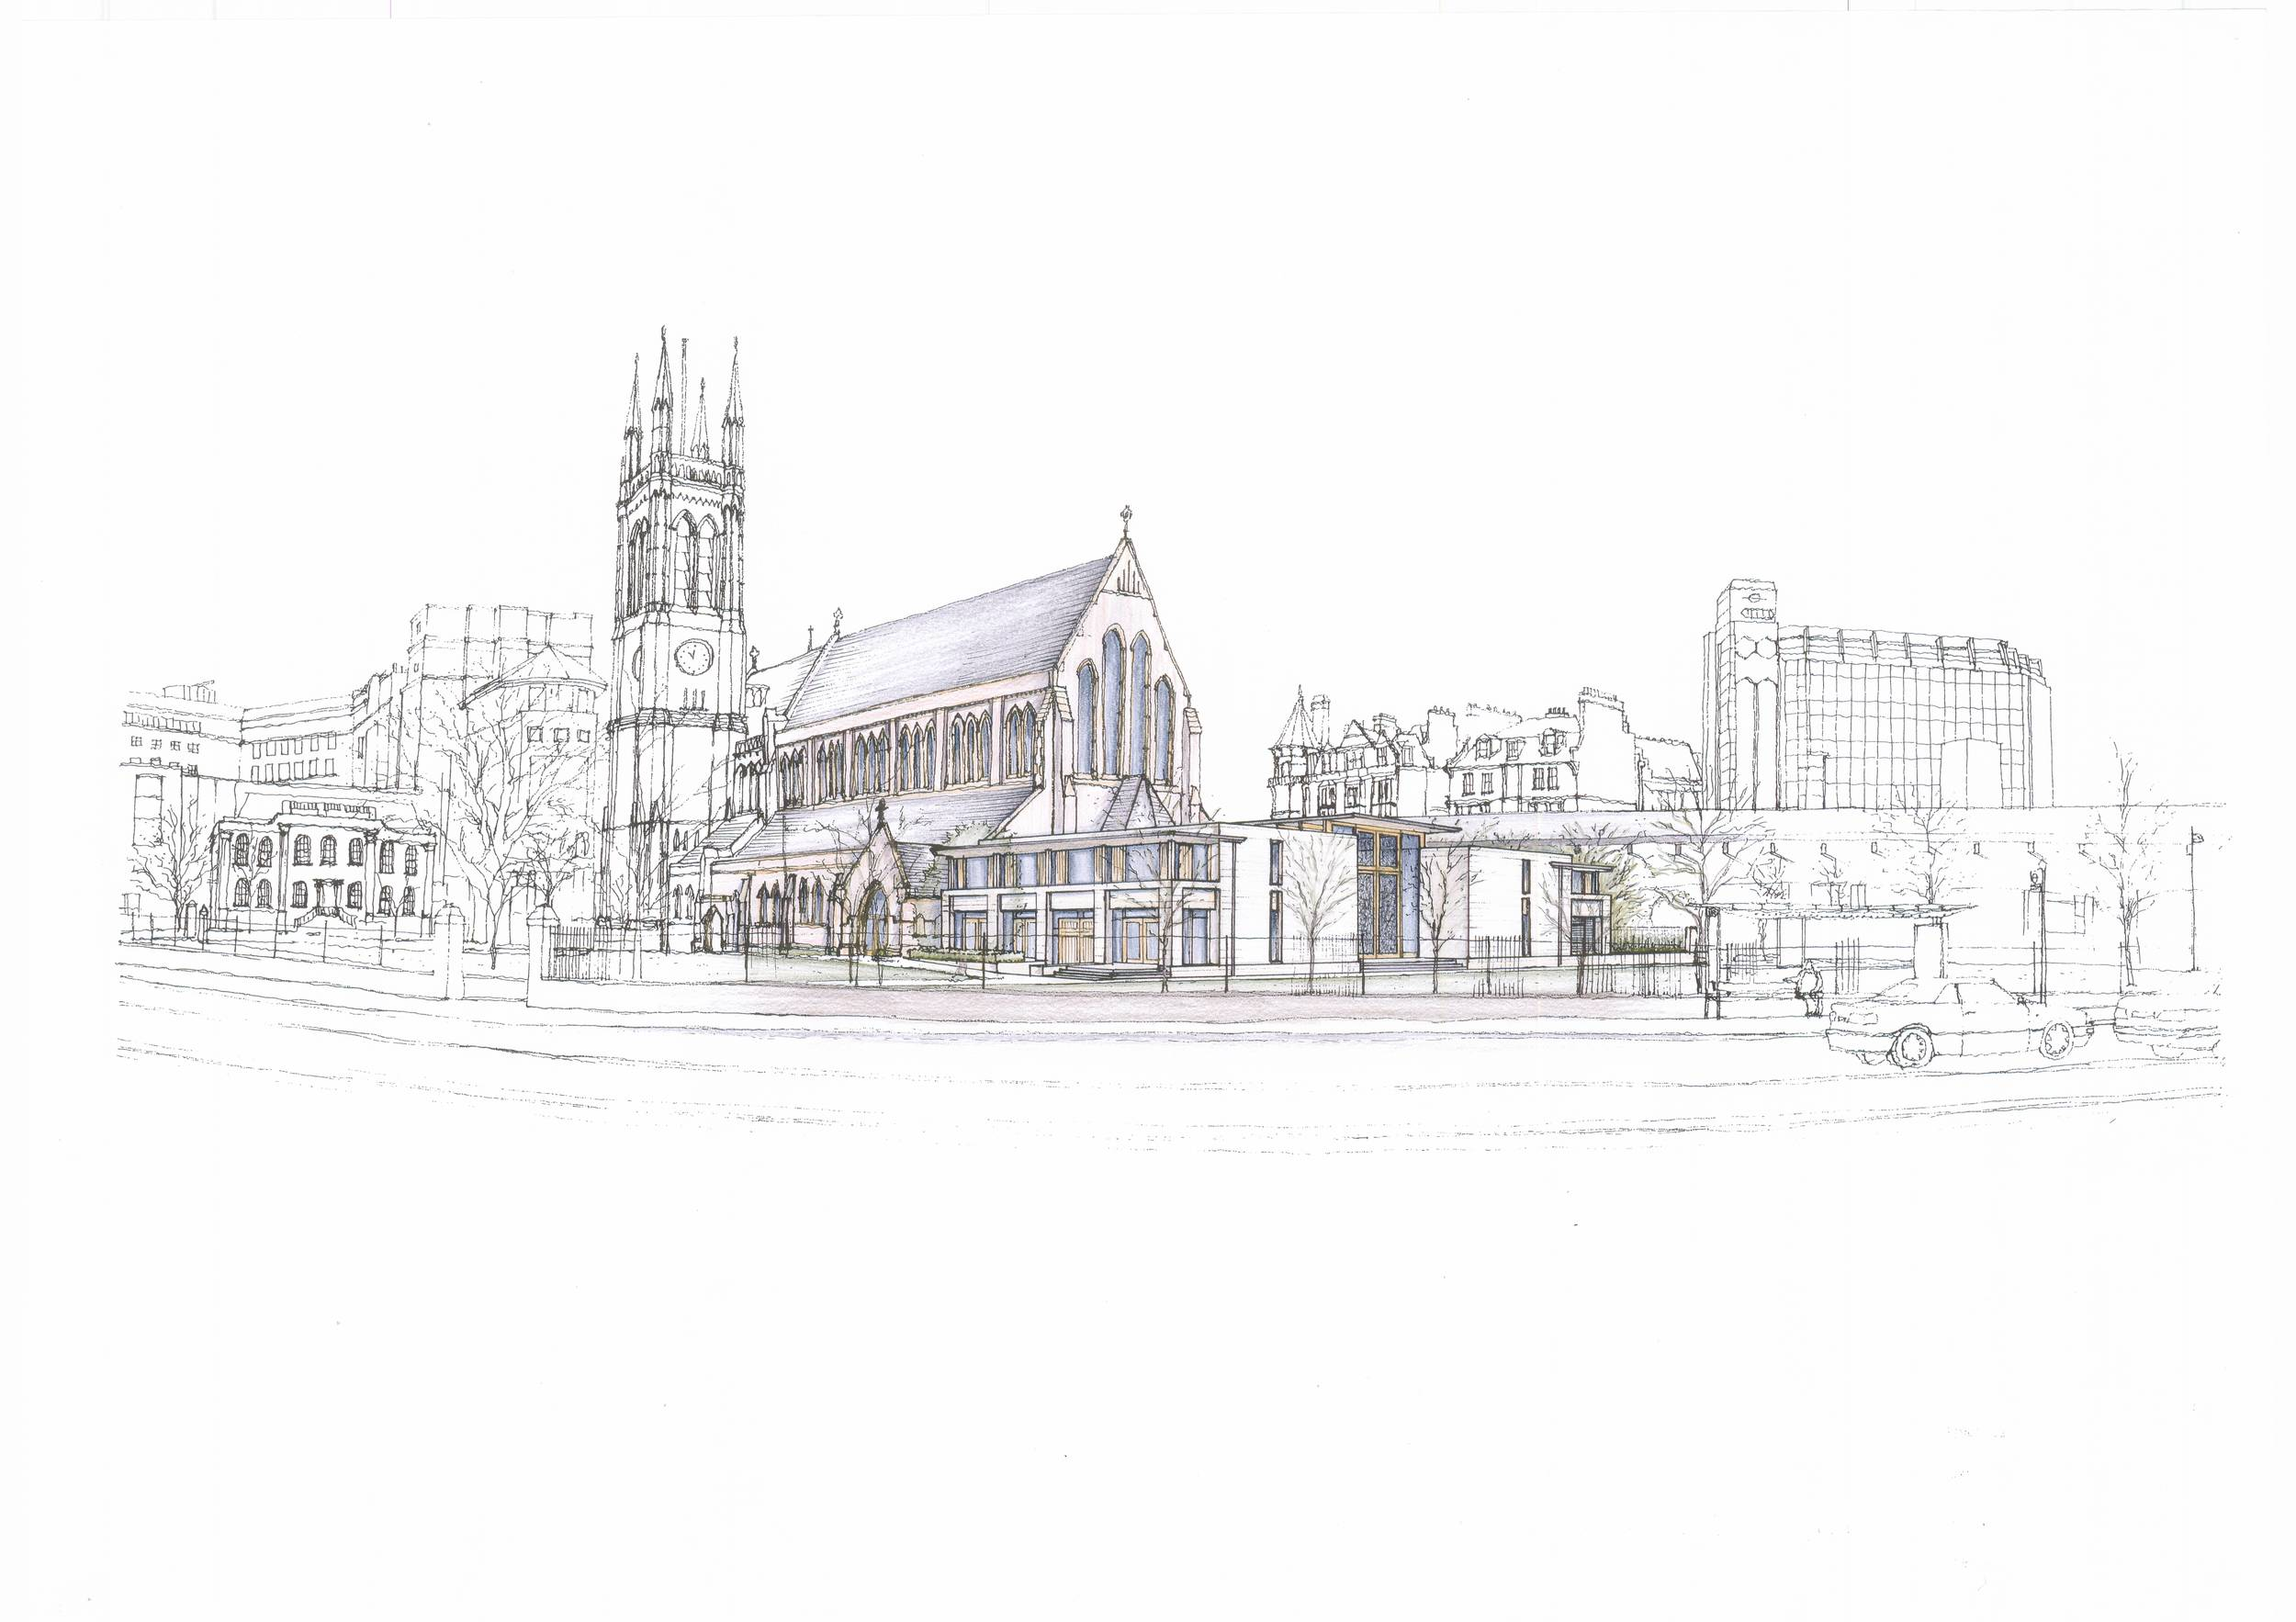 St. paul's Hammersmith West End Development North West perspective sketch Jan 06.JPG